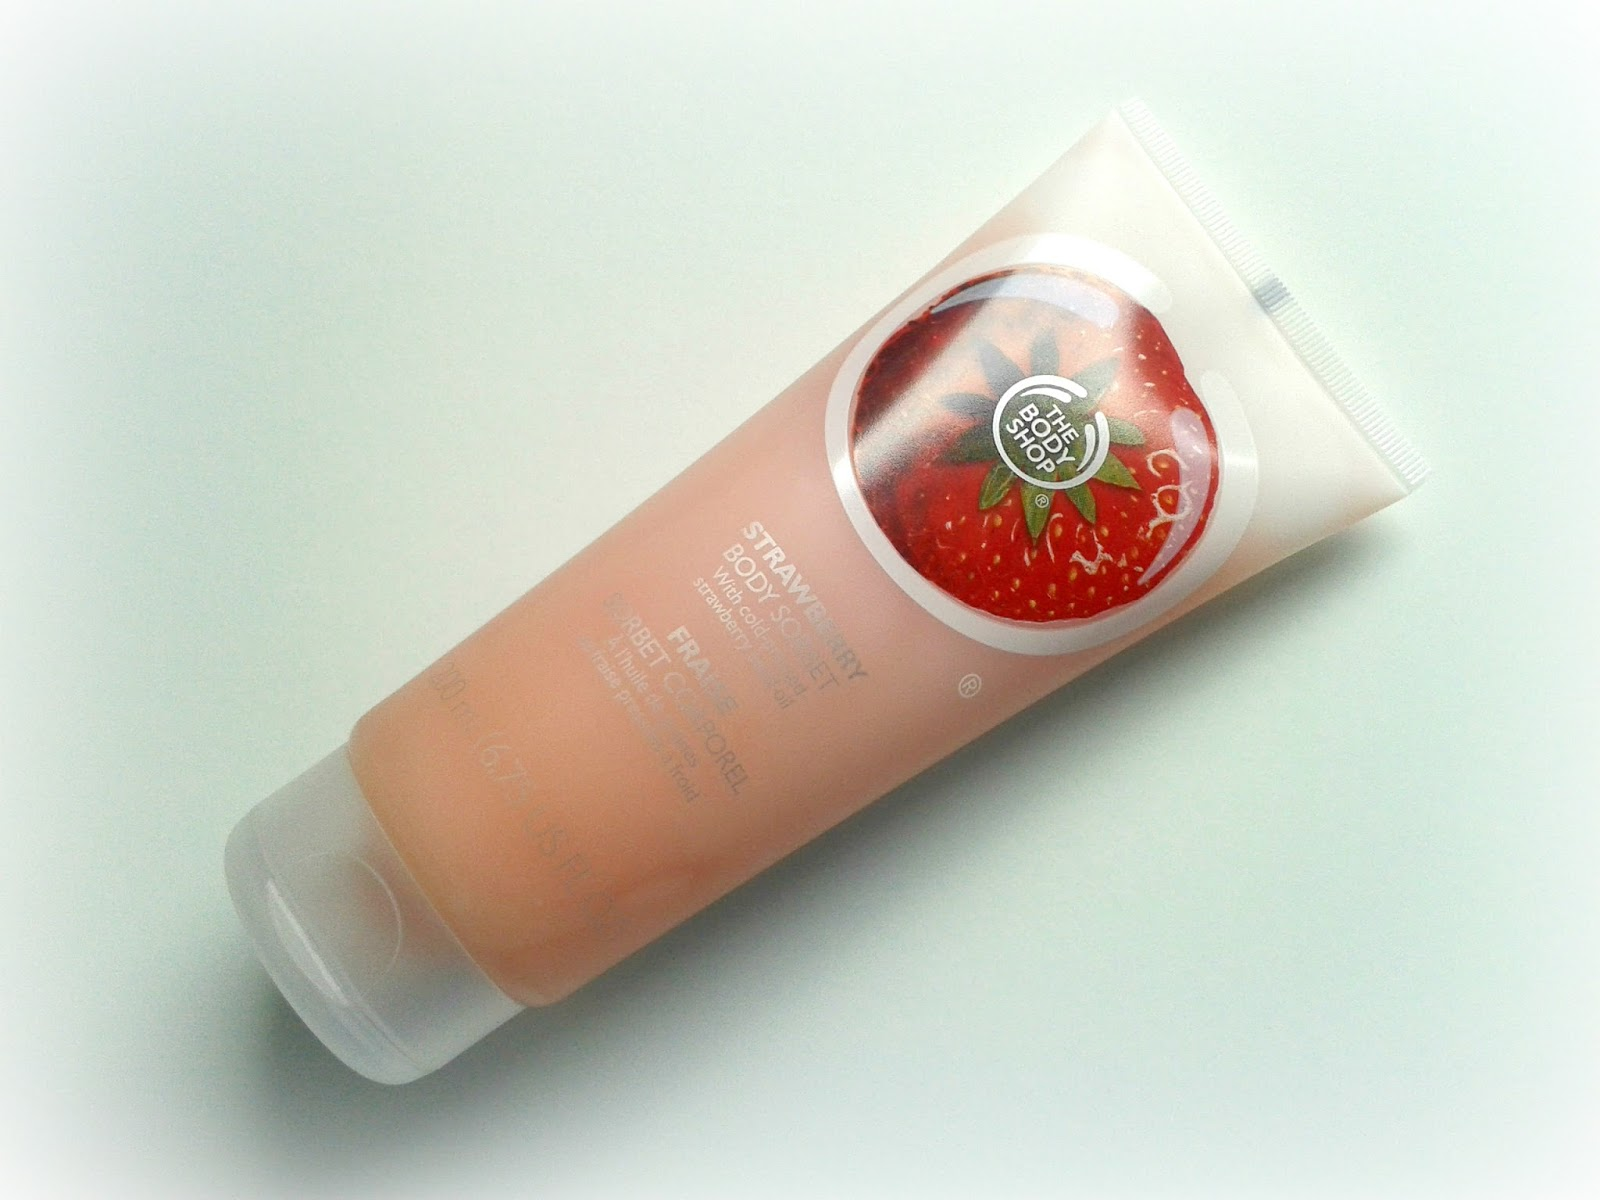 The Body Shop Strawberry Body Sorbet Beauty Review